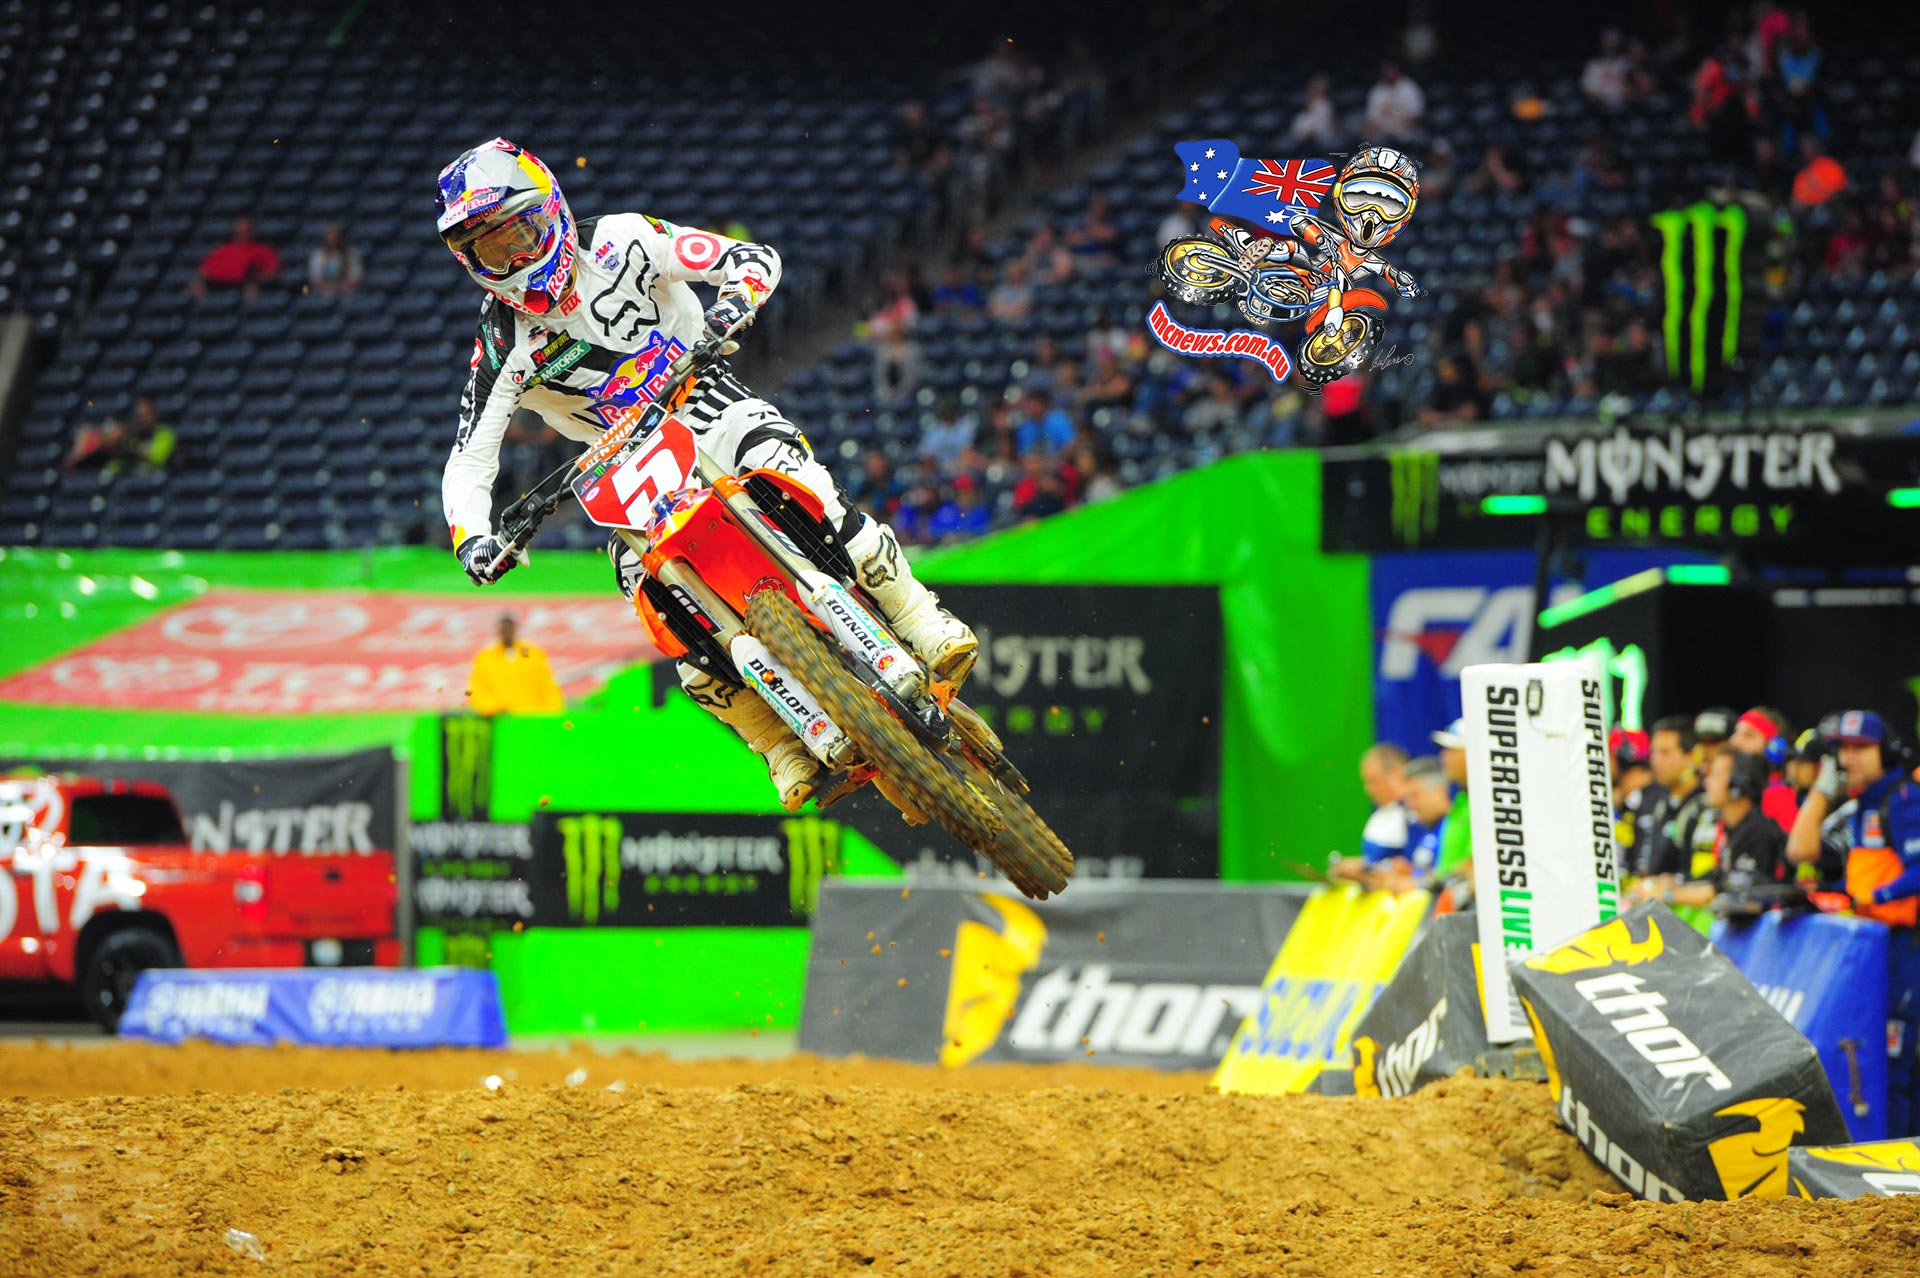 Ryan Dungey runner-up finish was his 13th consecutive podium result of the season and enough to clinch his first title since winning as a rookie during the 2010 season. The championship also signified the first for KTM in the 450SX Class.